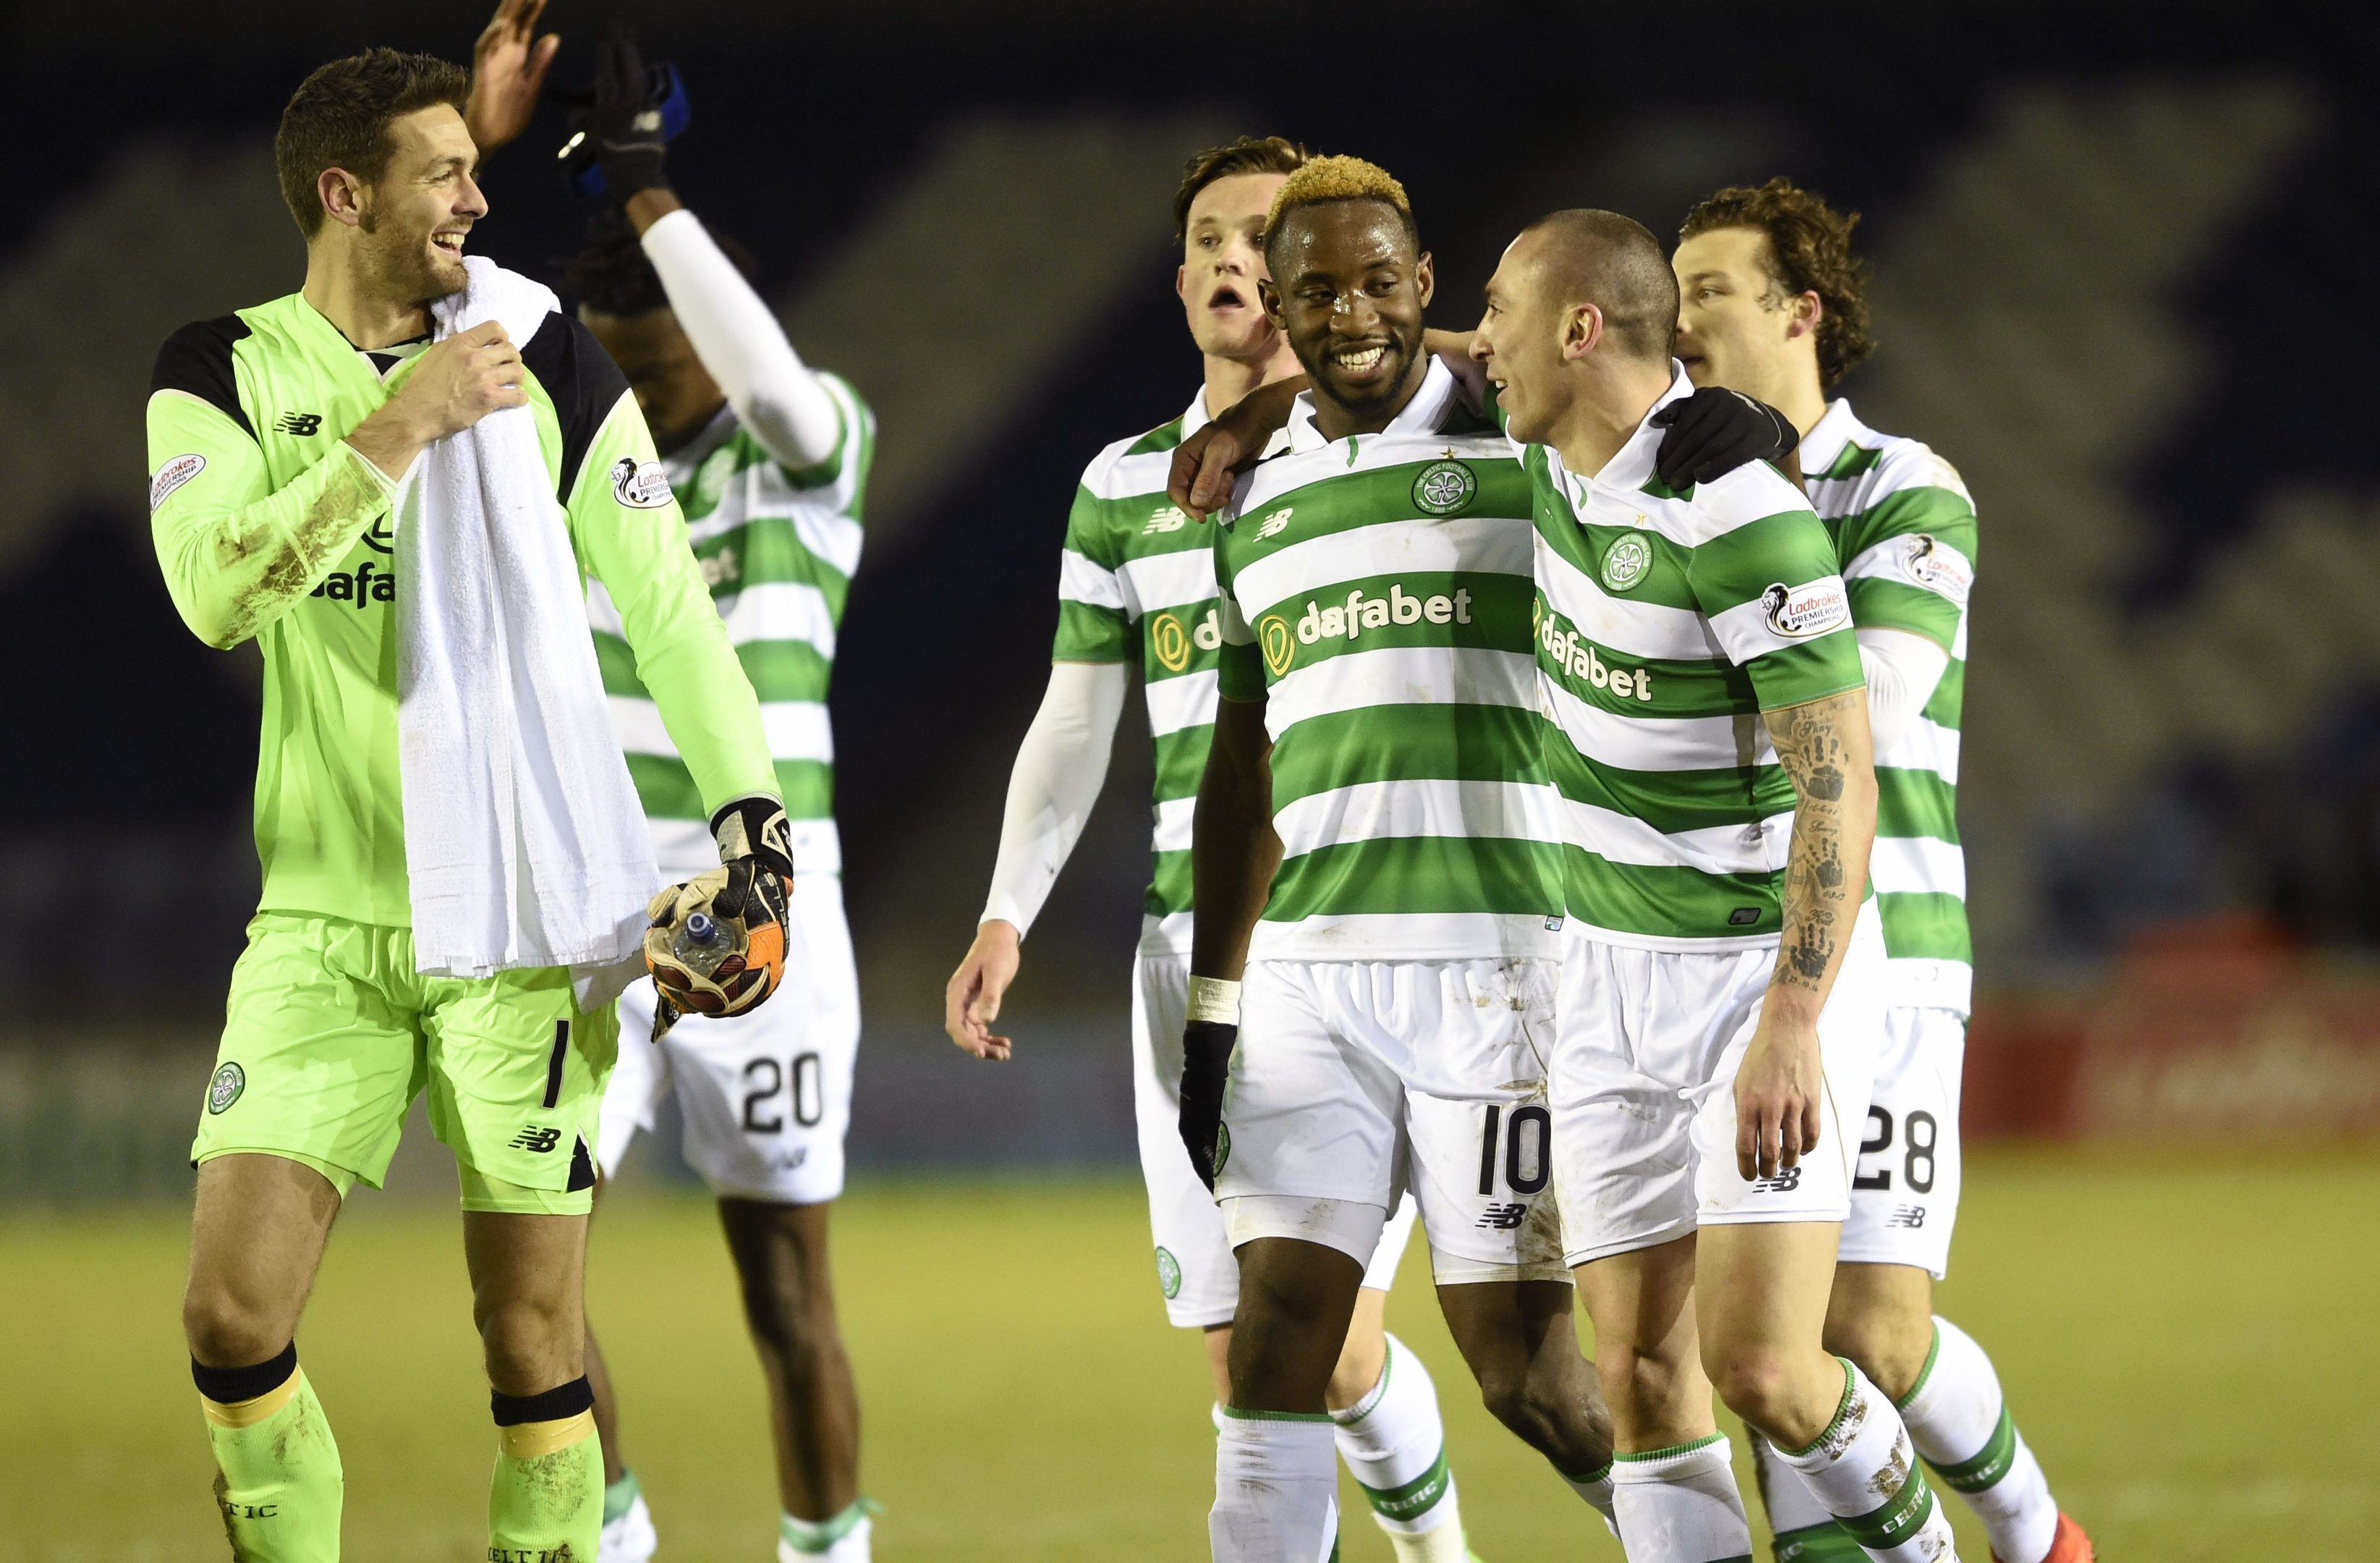 Celtic's Moussa Dembele celebrates victory with Scott Brown and goalkeeper Craig Gordon (Ian Rutherford/PA Wire)